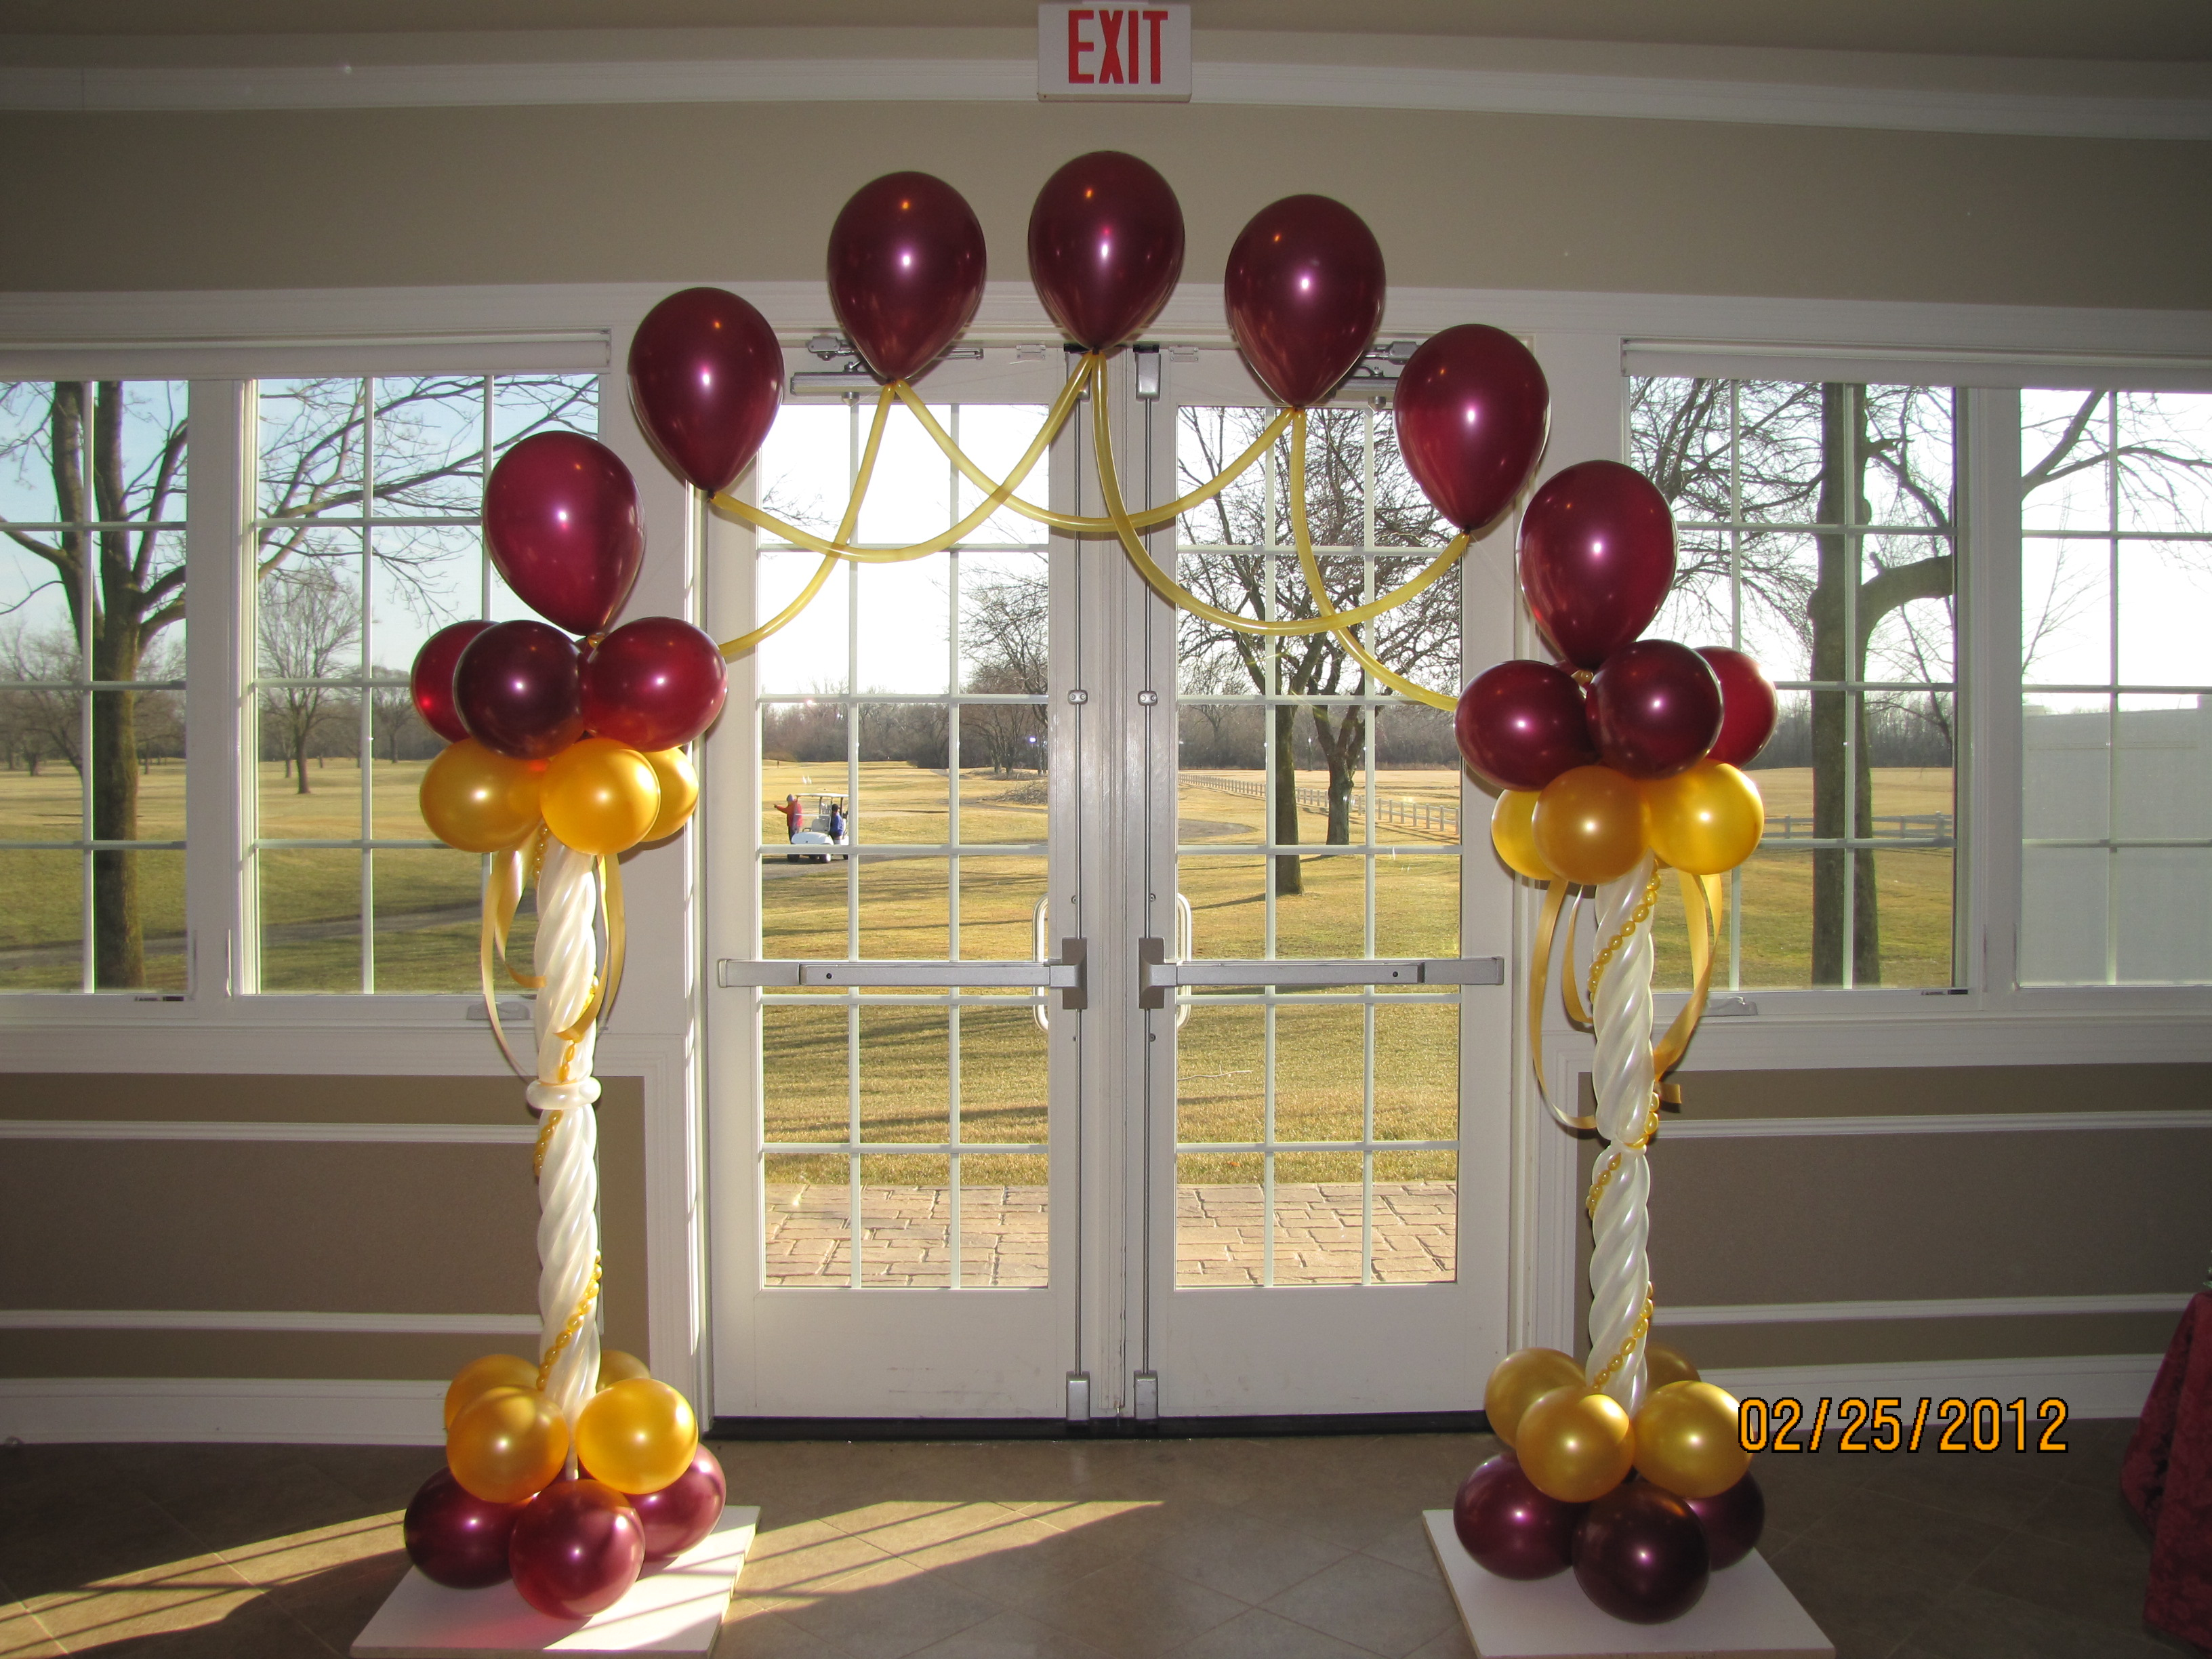 Northwest indiana balloons amytheballoonlady for Arch balloon decoration